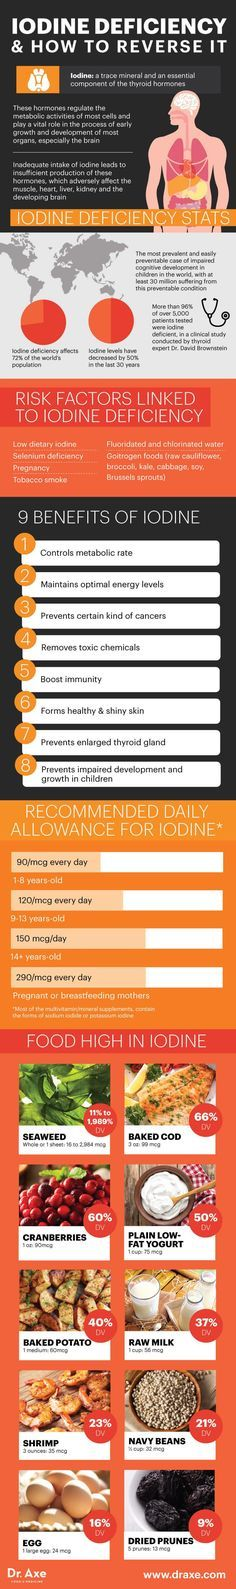 The Iodine Deficiency Epidemic — How to Reverse It for Your Health